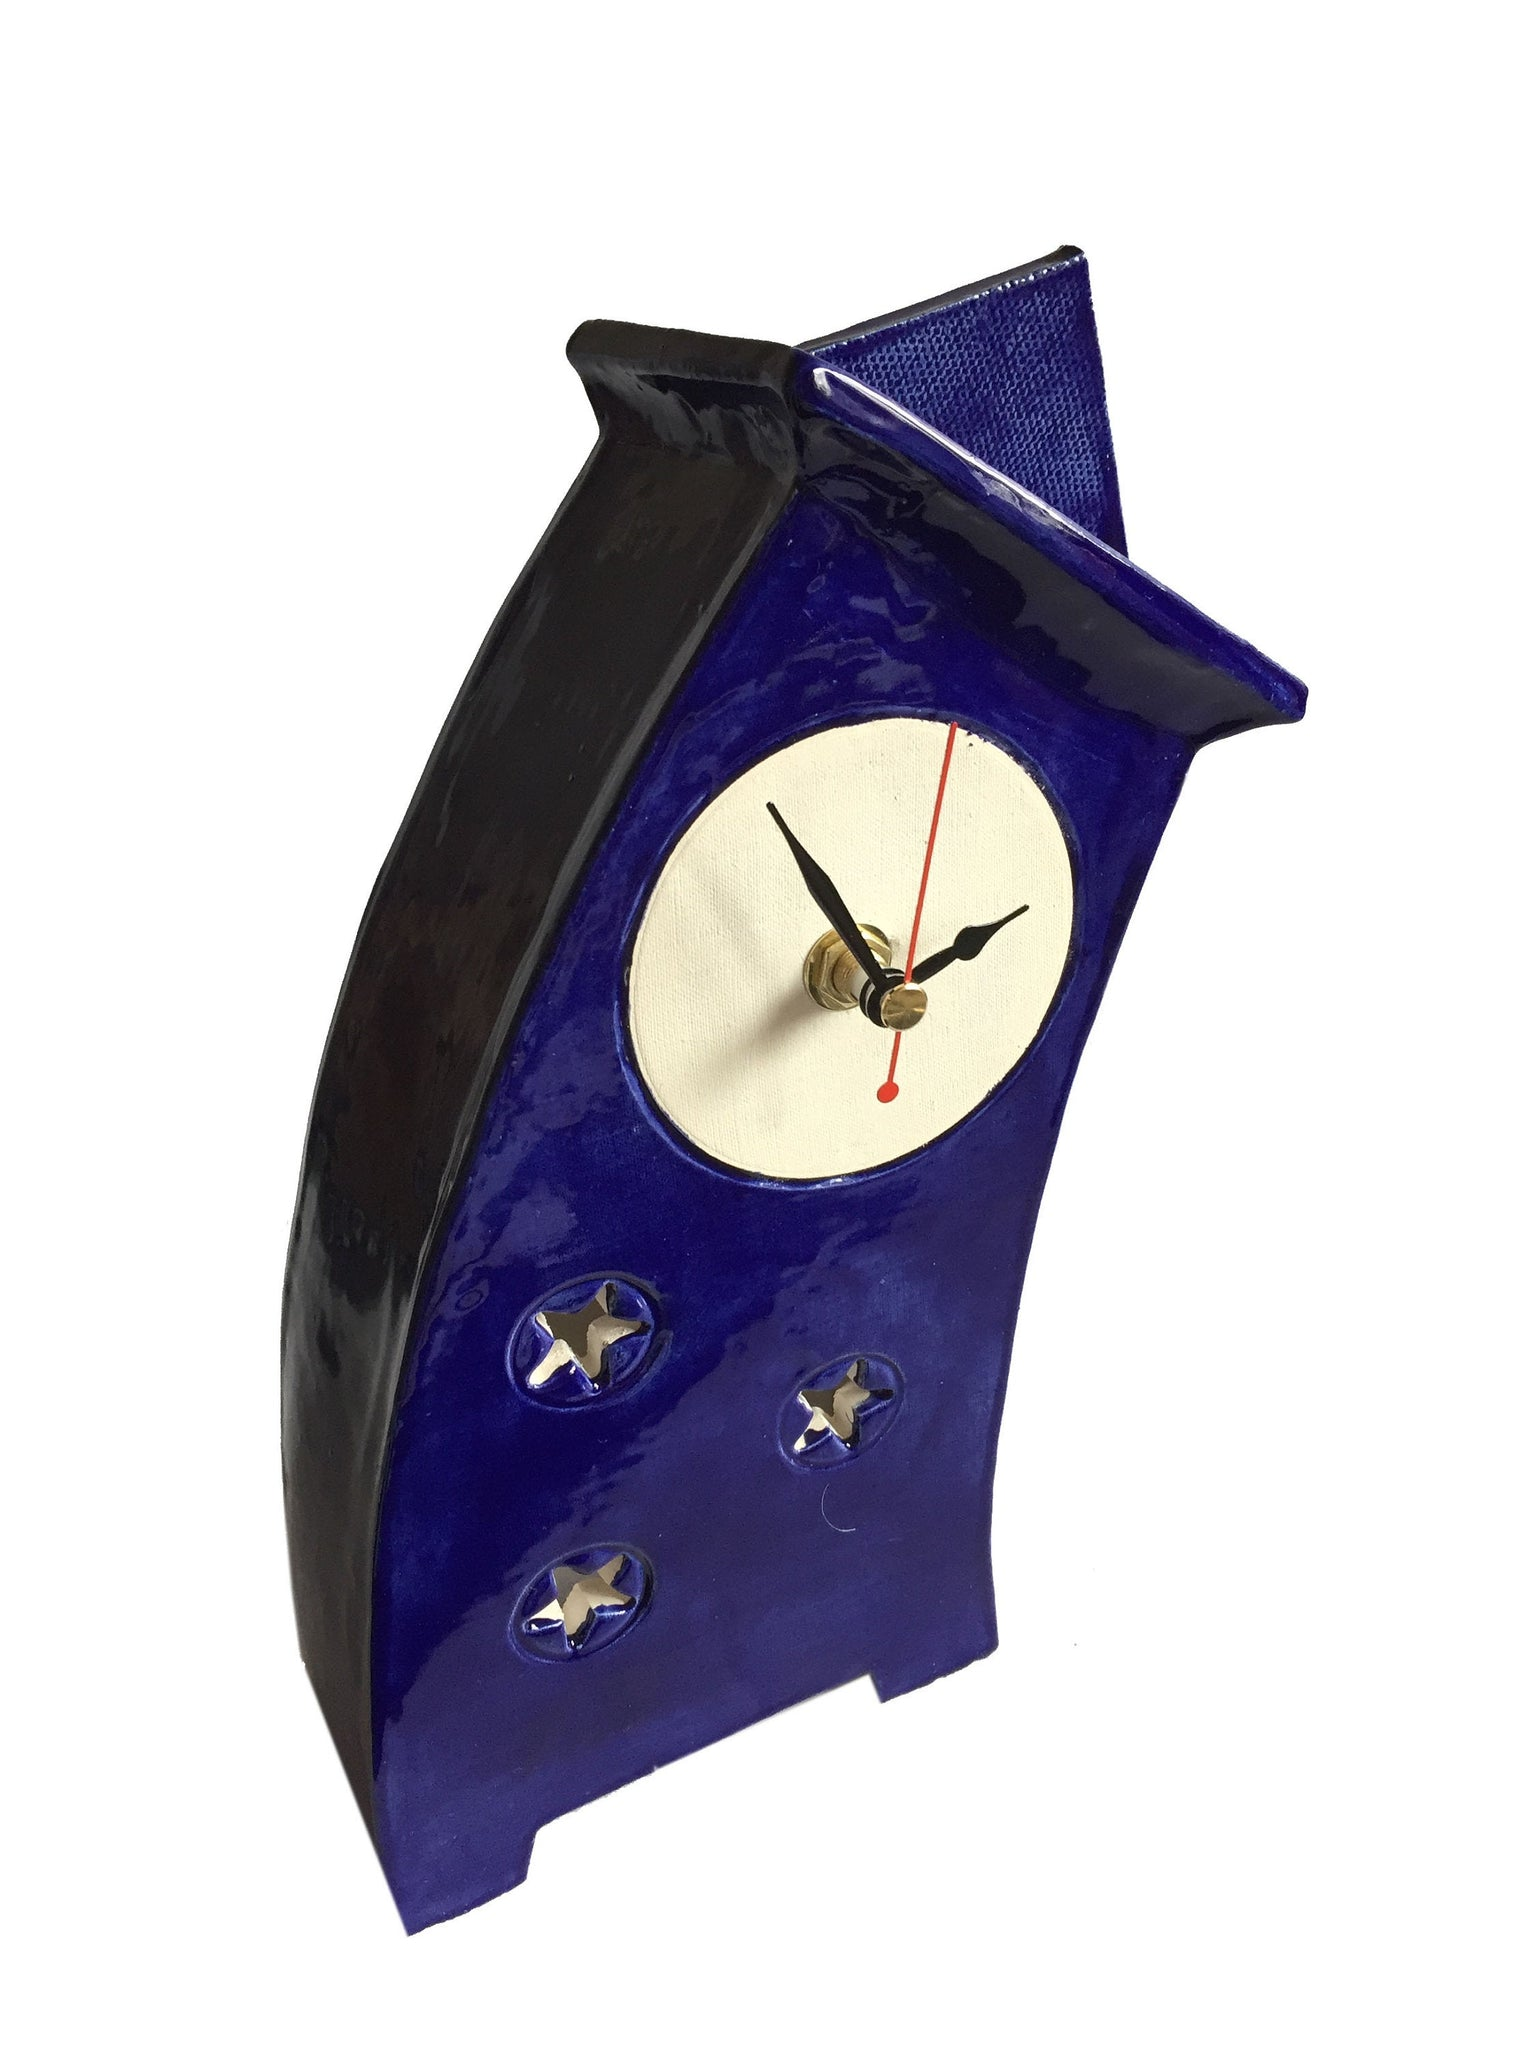 Tabletop Clock, Mantel Clock, Shelf Clock, Wonky Clock - PeterBowenArt